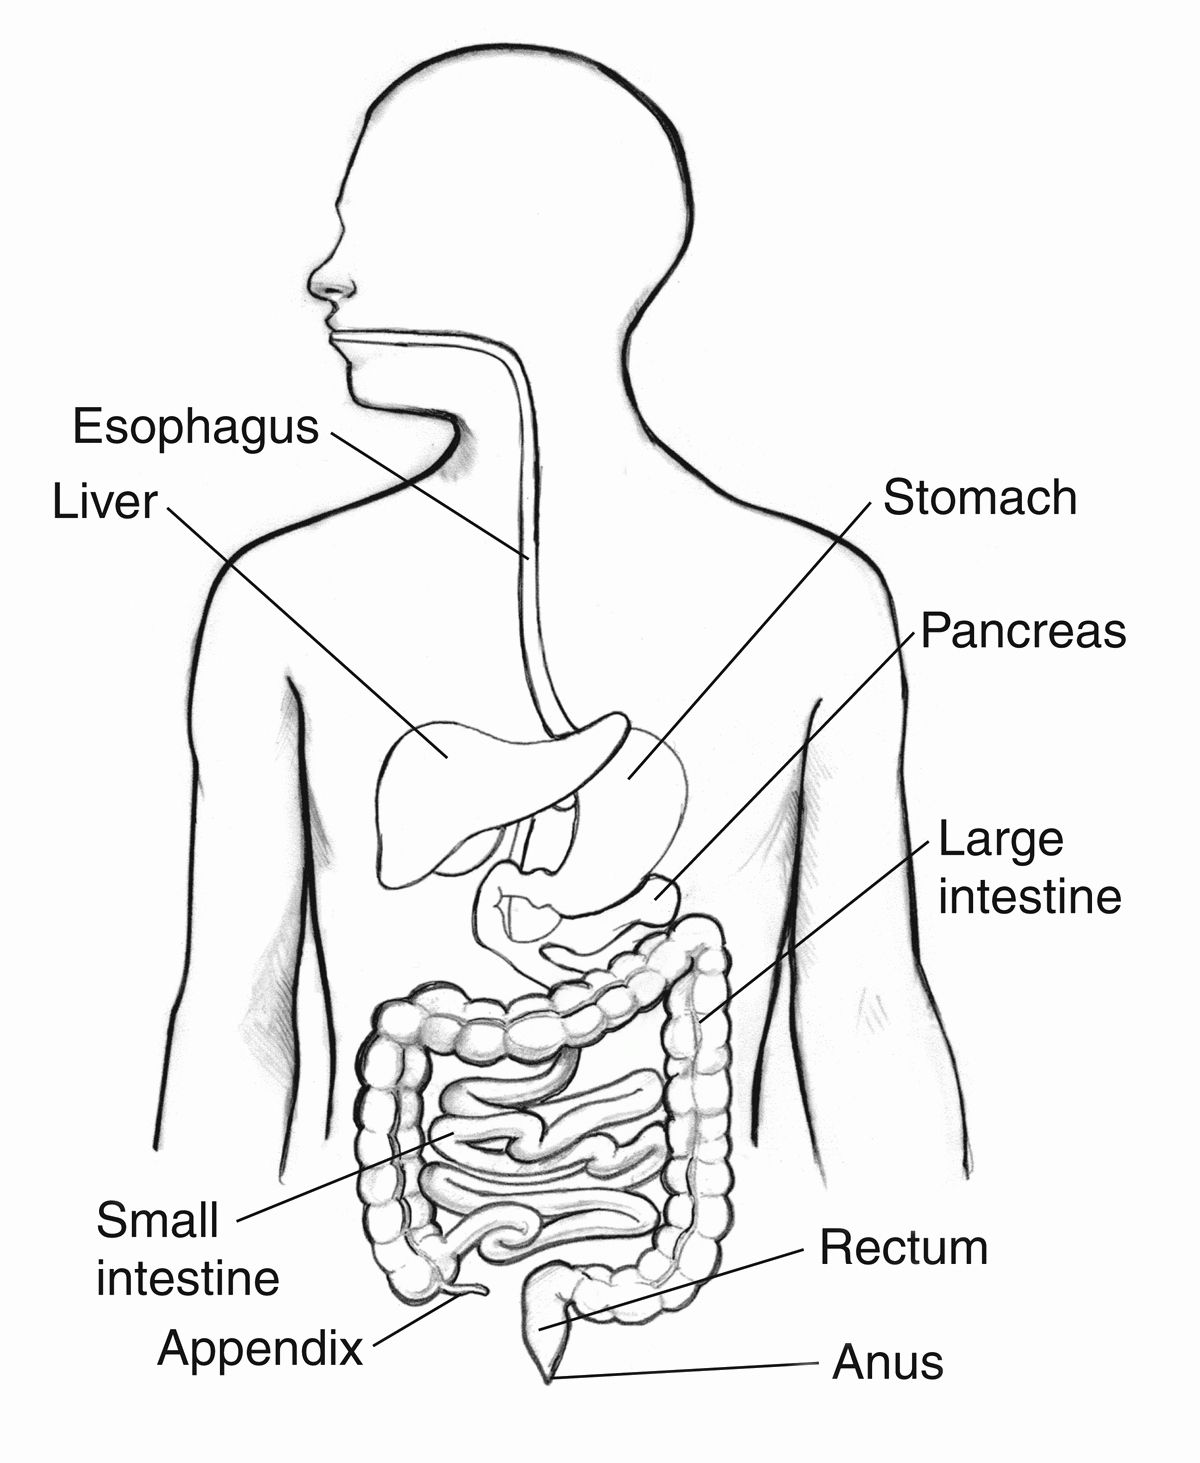 28 Digestive System Coloring Page In 2020 Human Digestive System